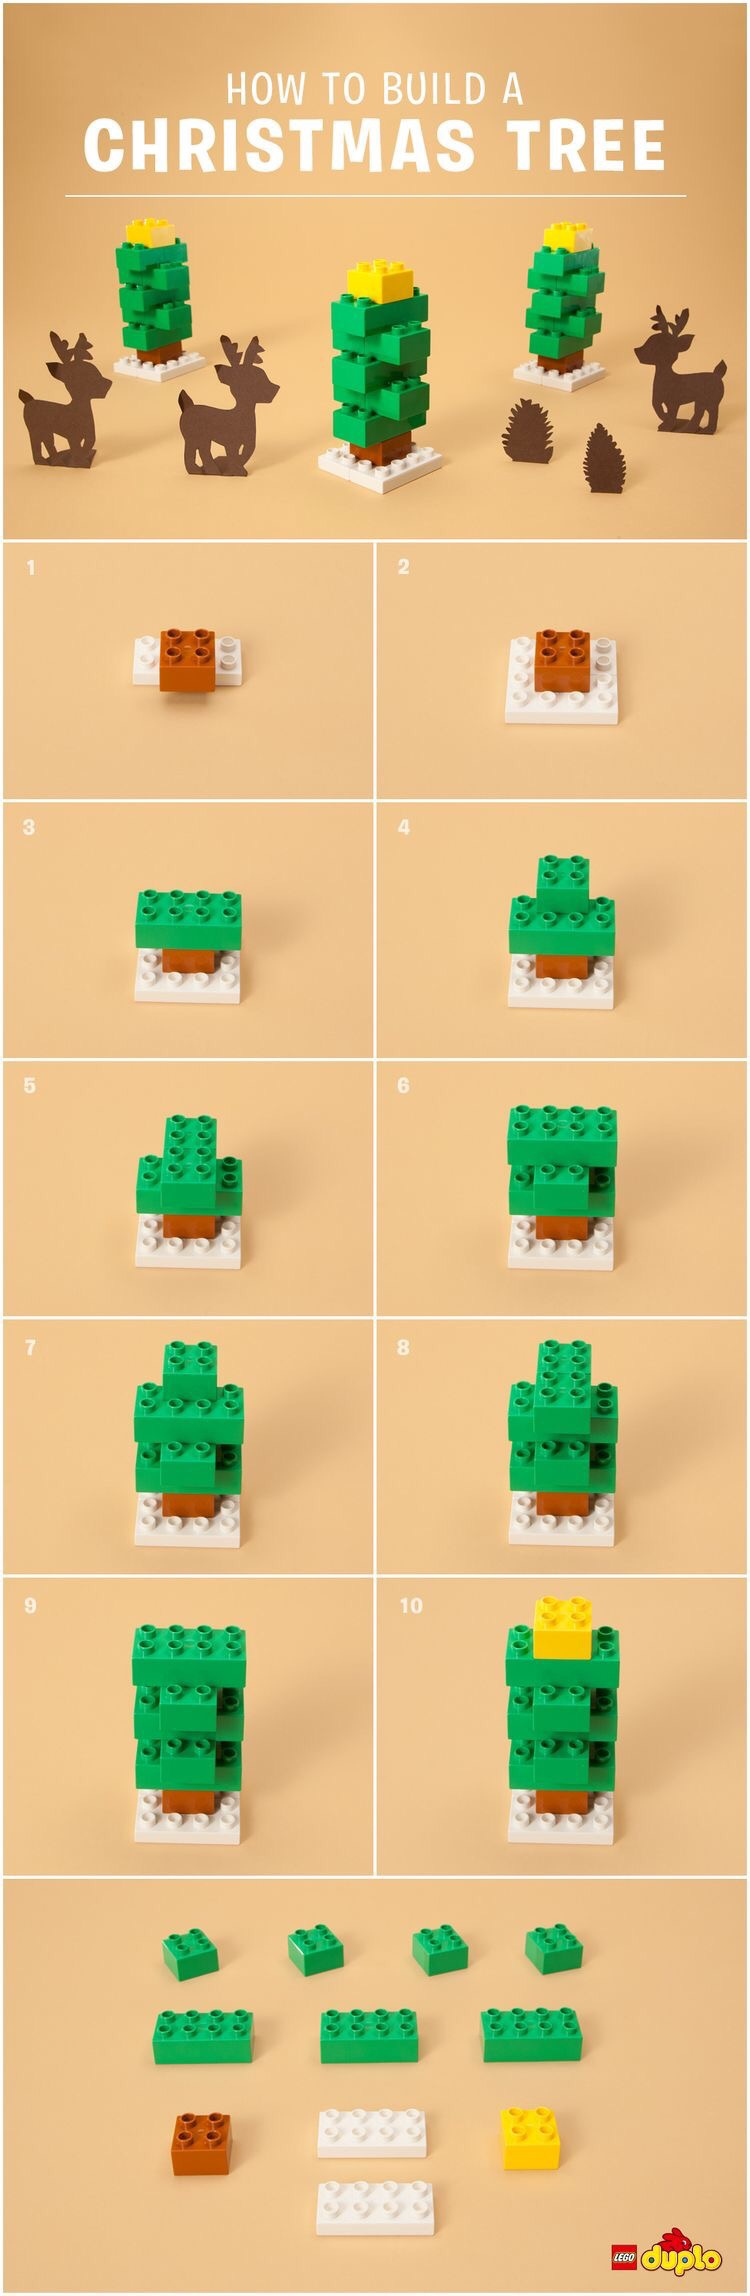 lego christmas tree instructions